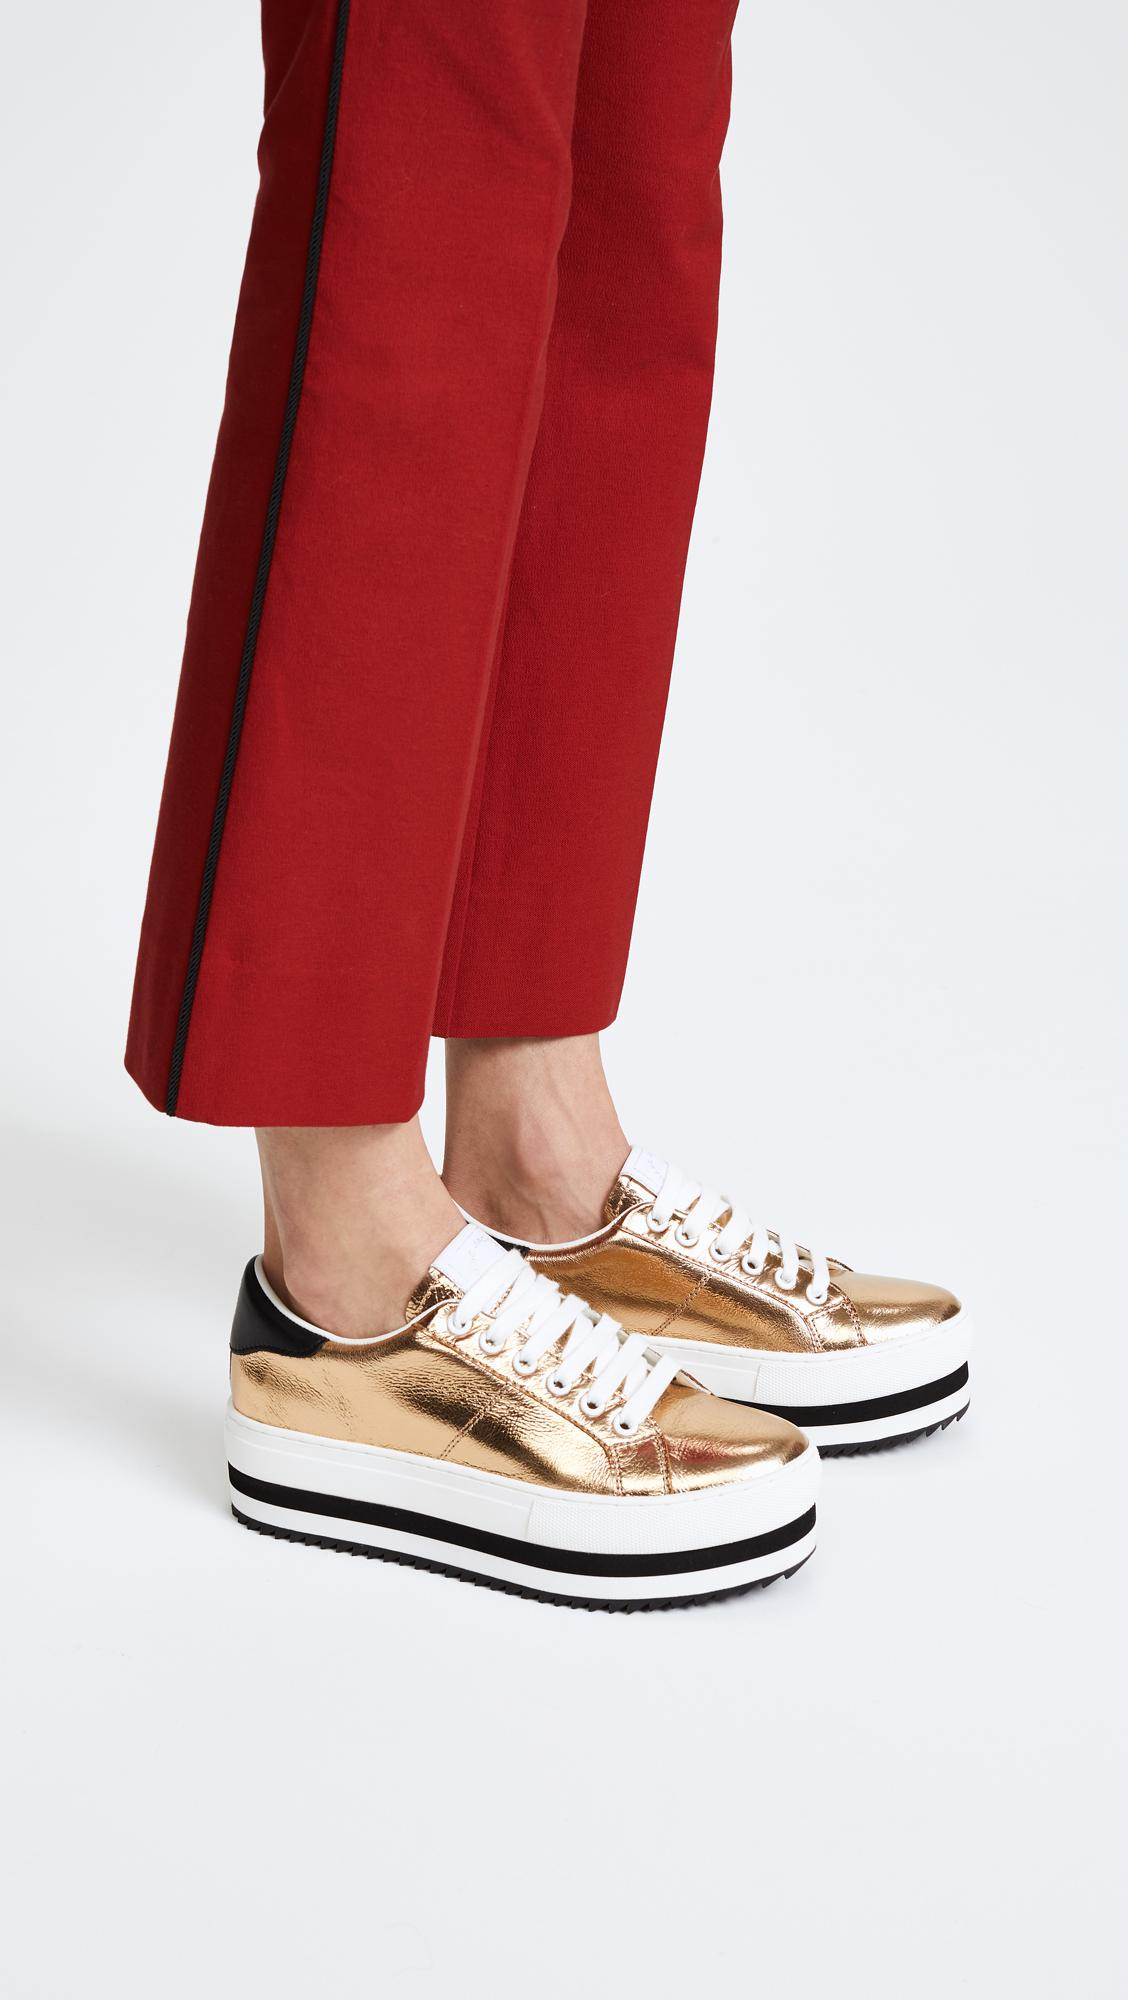 691e2acc8efb Lyst - Marc Jacobs Grand Platform Sneakers in Metallic